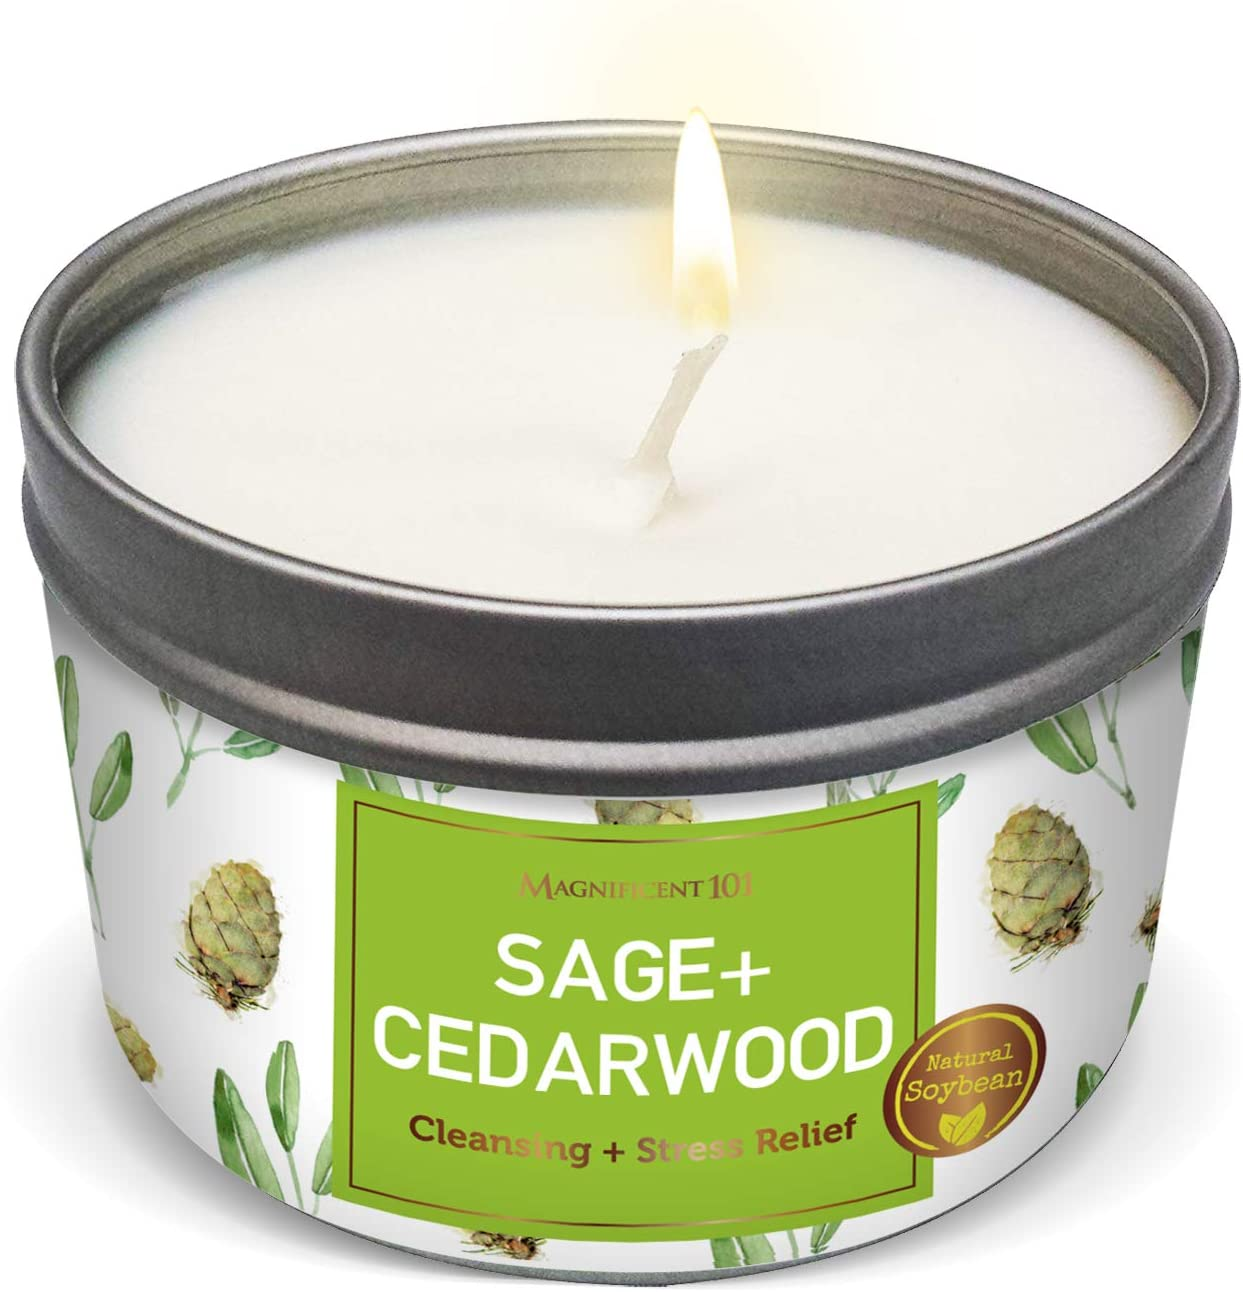 SAGE + Cedarwood Aromatherapy Candle for House Energy Cleansing and Stress Relief, Banishes Negative Energy I Purification and Chakra Healing - Natural Soy Wax Tin Candle for Aromatherapy 6oz